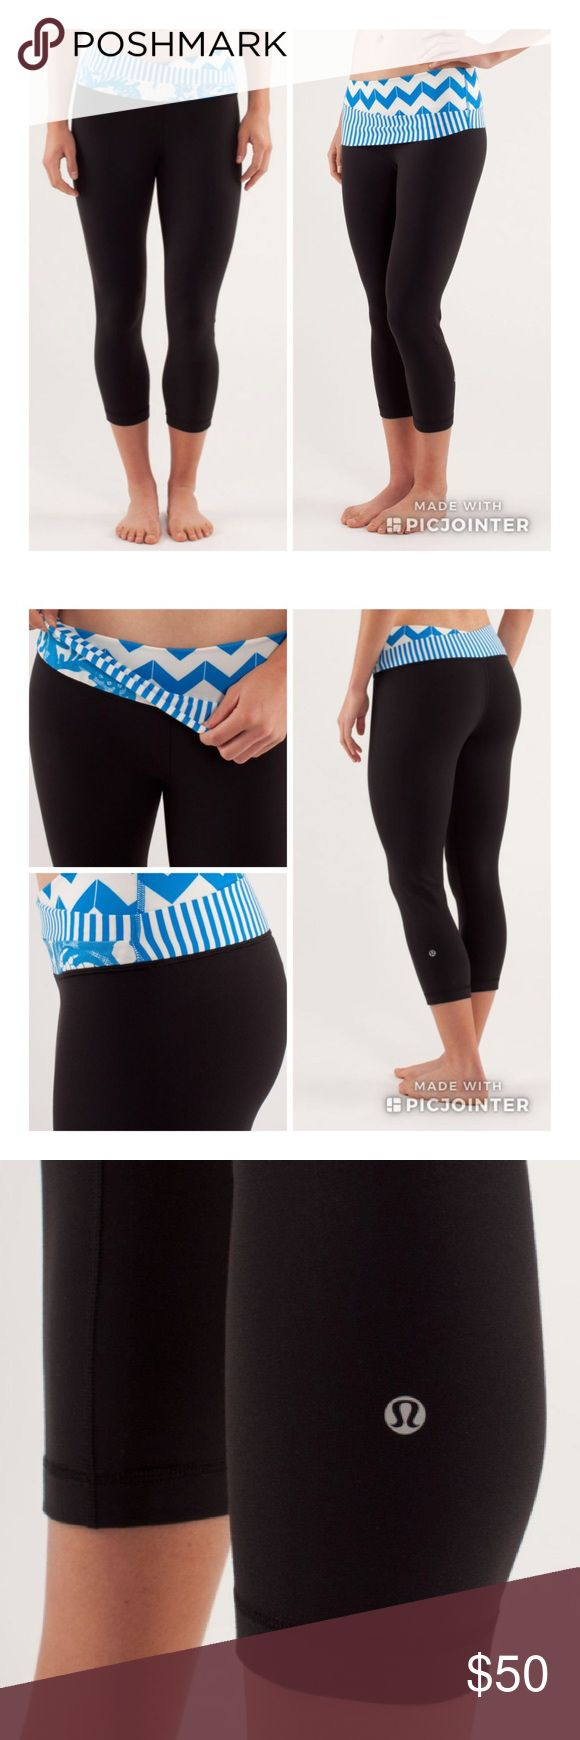 Lululemon Astro Wunder Under Crop 8 Lululemon Astro Wunder Under Crop size 8 like new condition! Black with beaming blue pattern waist that can be rolled up or down as pictured to change look of pants. Has attached tag and inner waist pocket! Feel free to make me an off 😊 lululemon athletica Pants